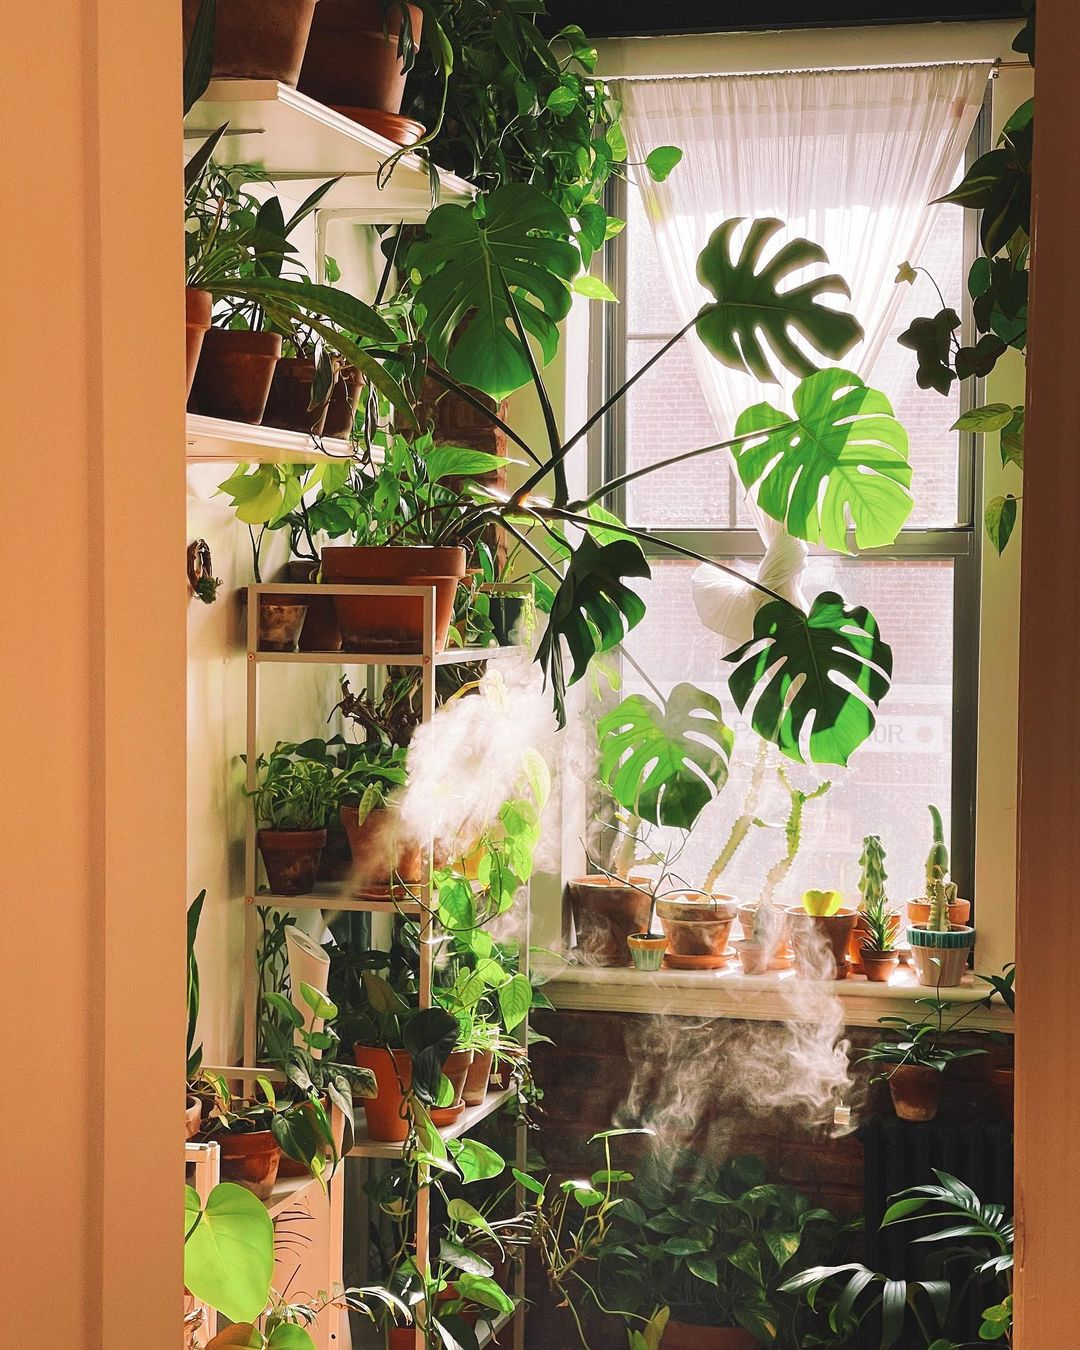 7 Most Common Houseplant Pests and How to Get Rid of Them